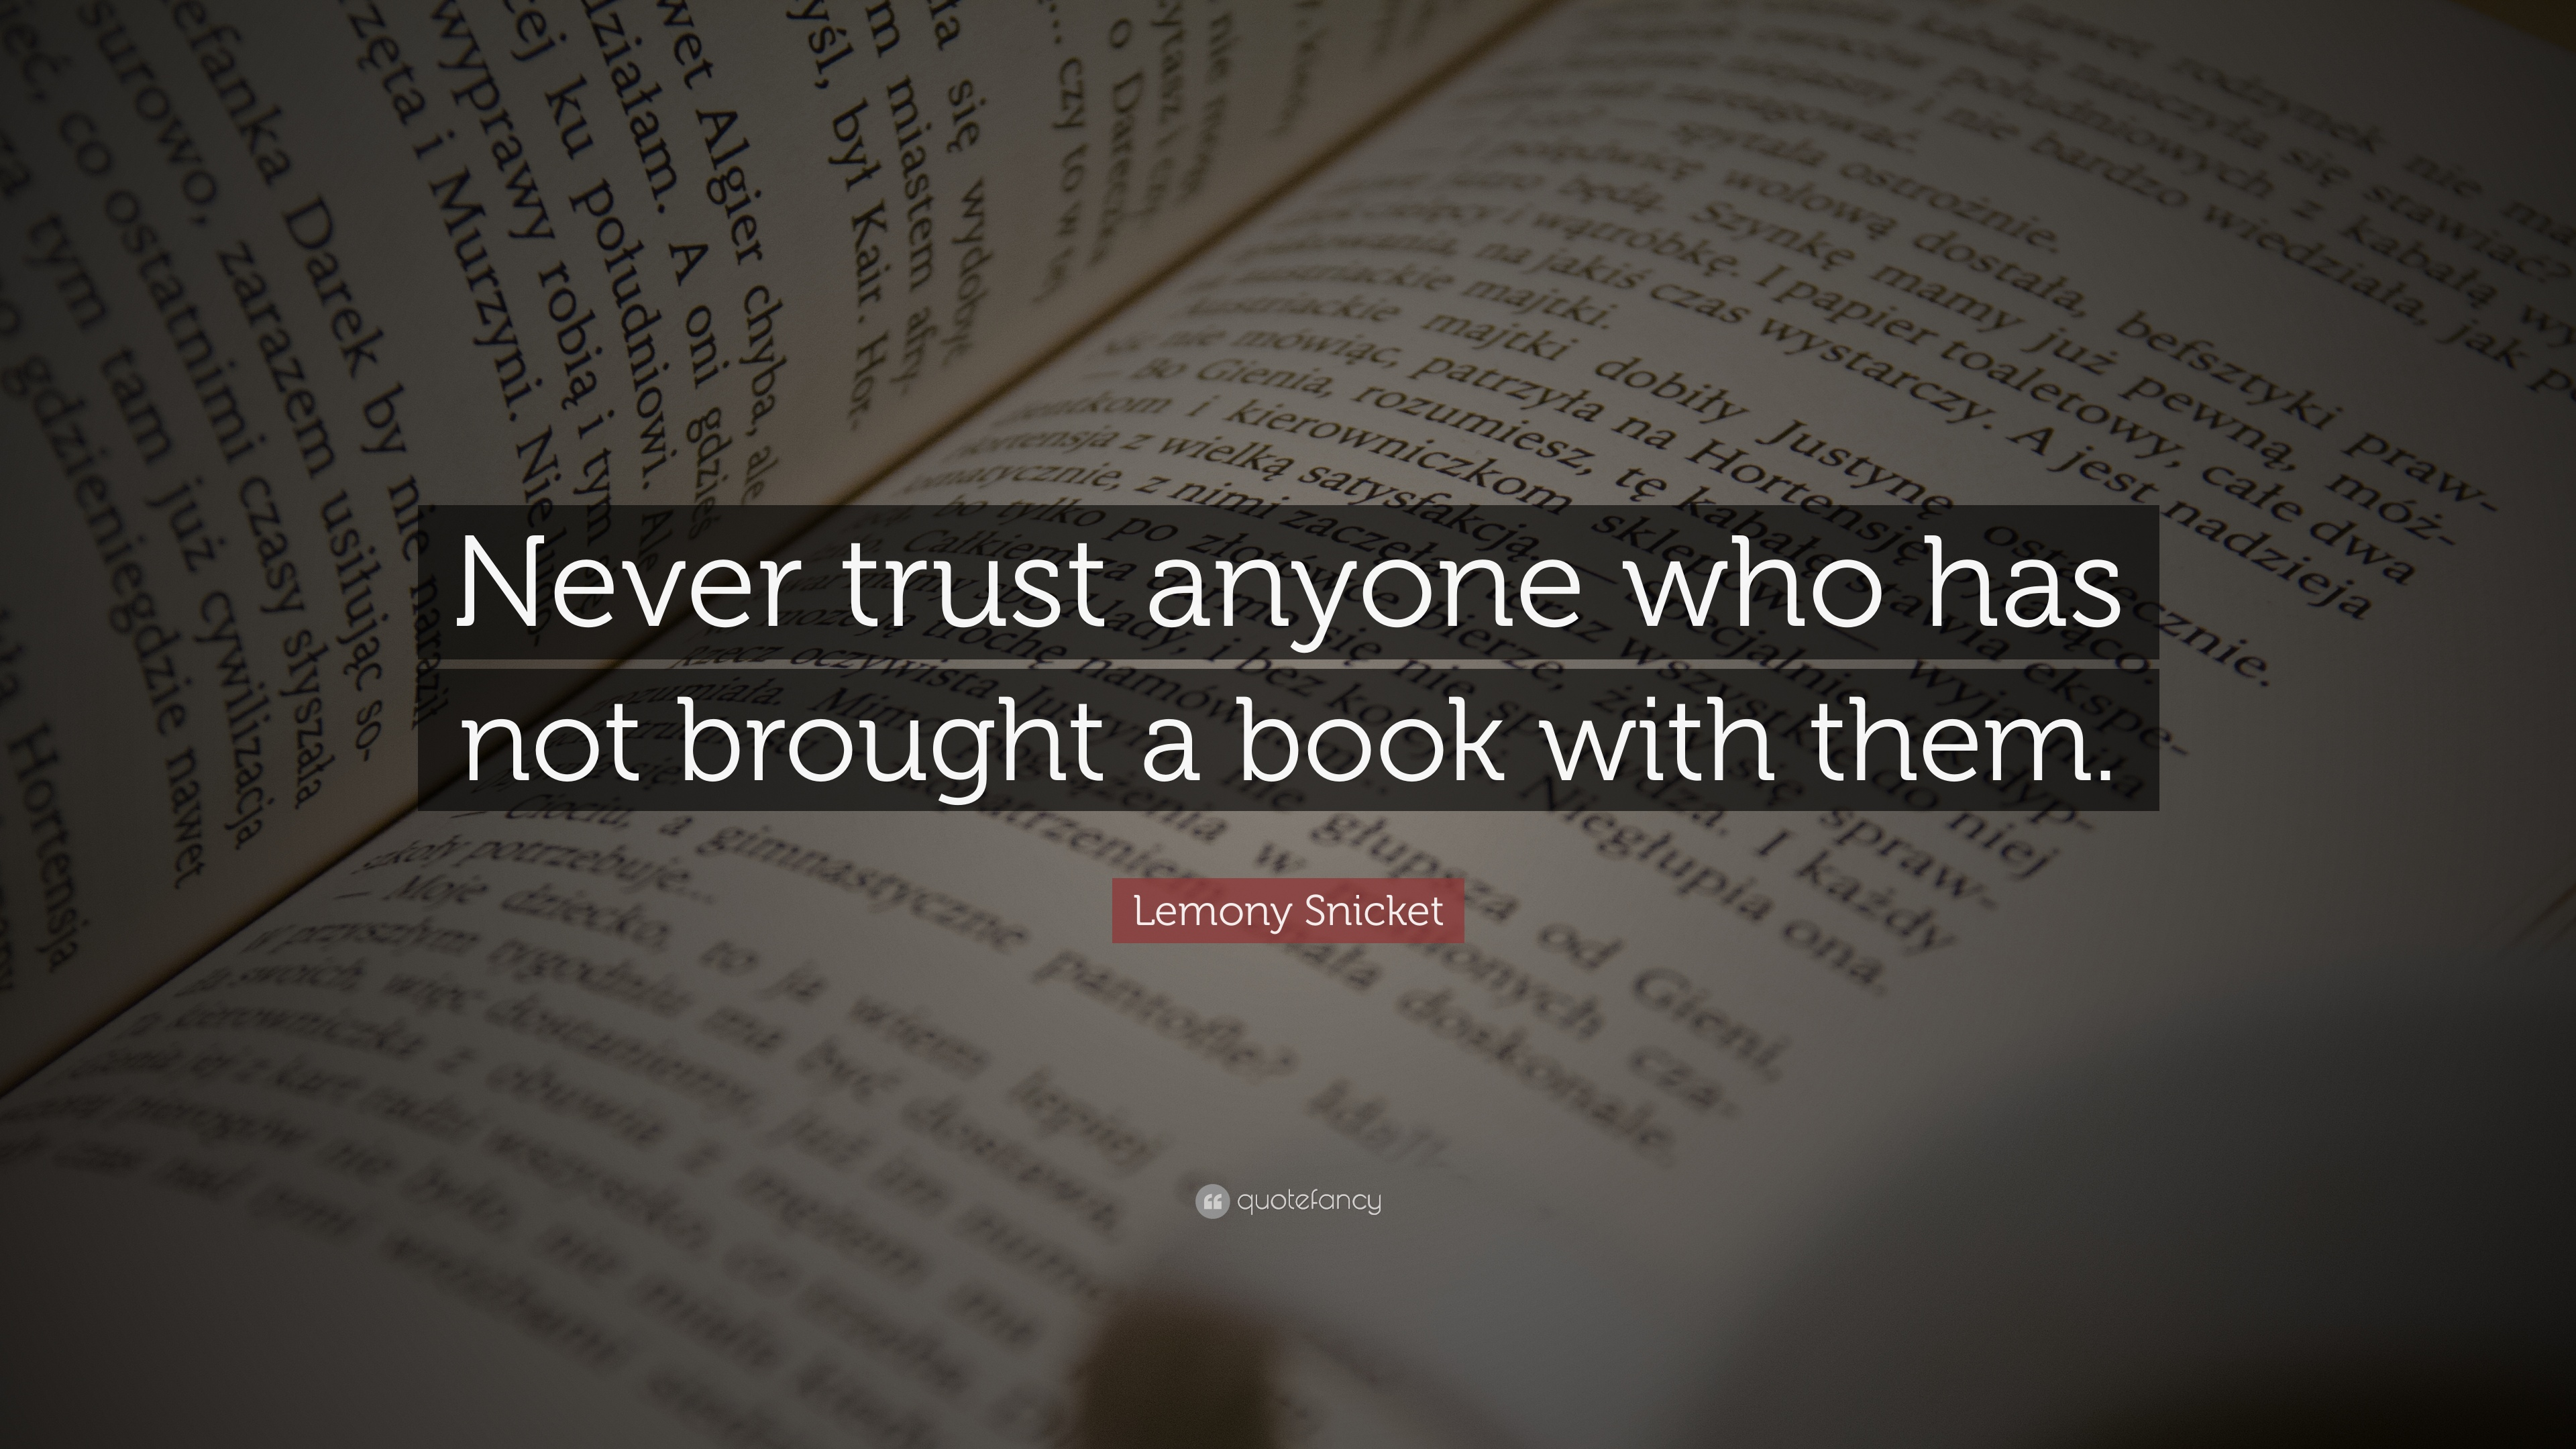 quotes about books and reading (22 wallpapers) - quotefancy